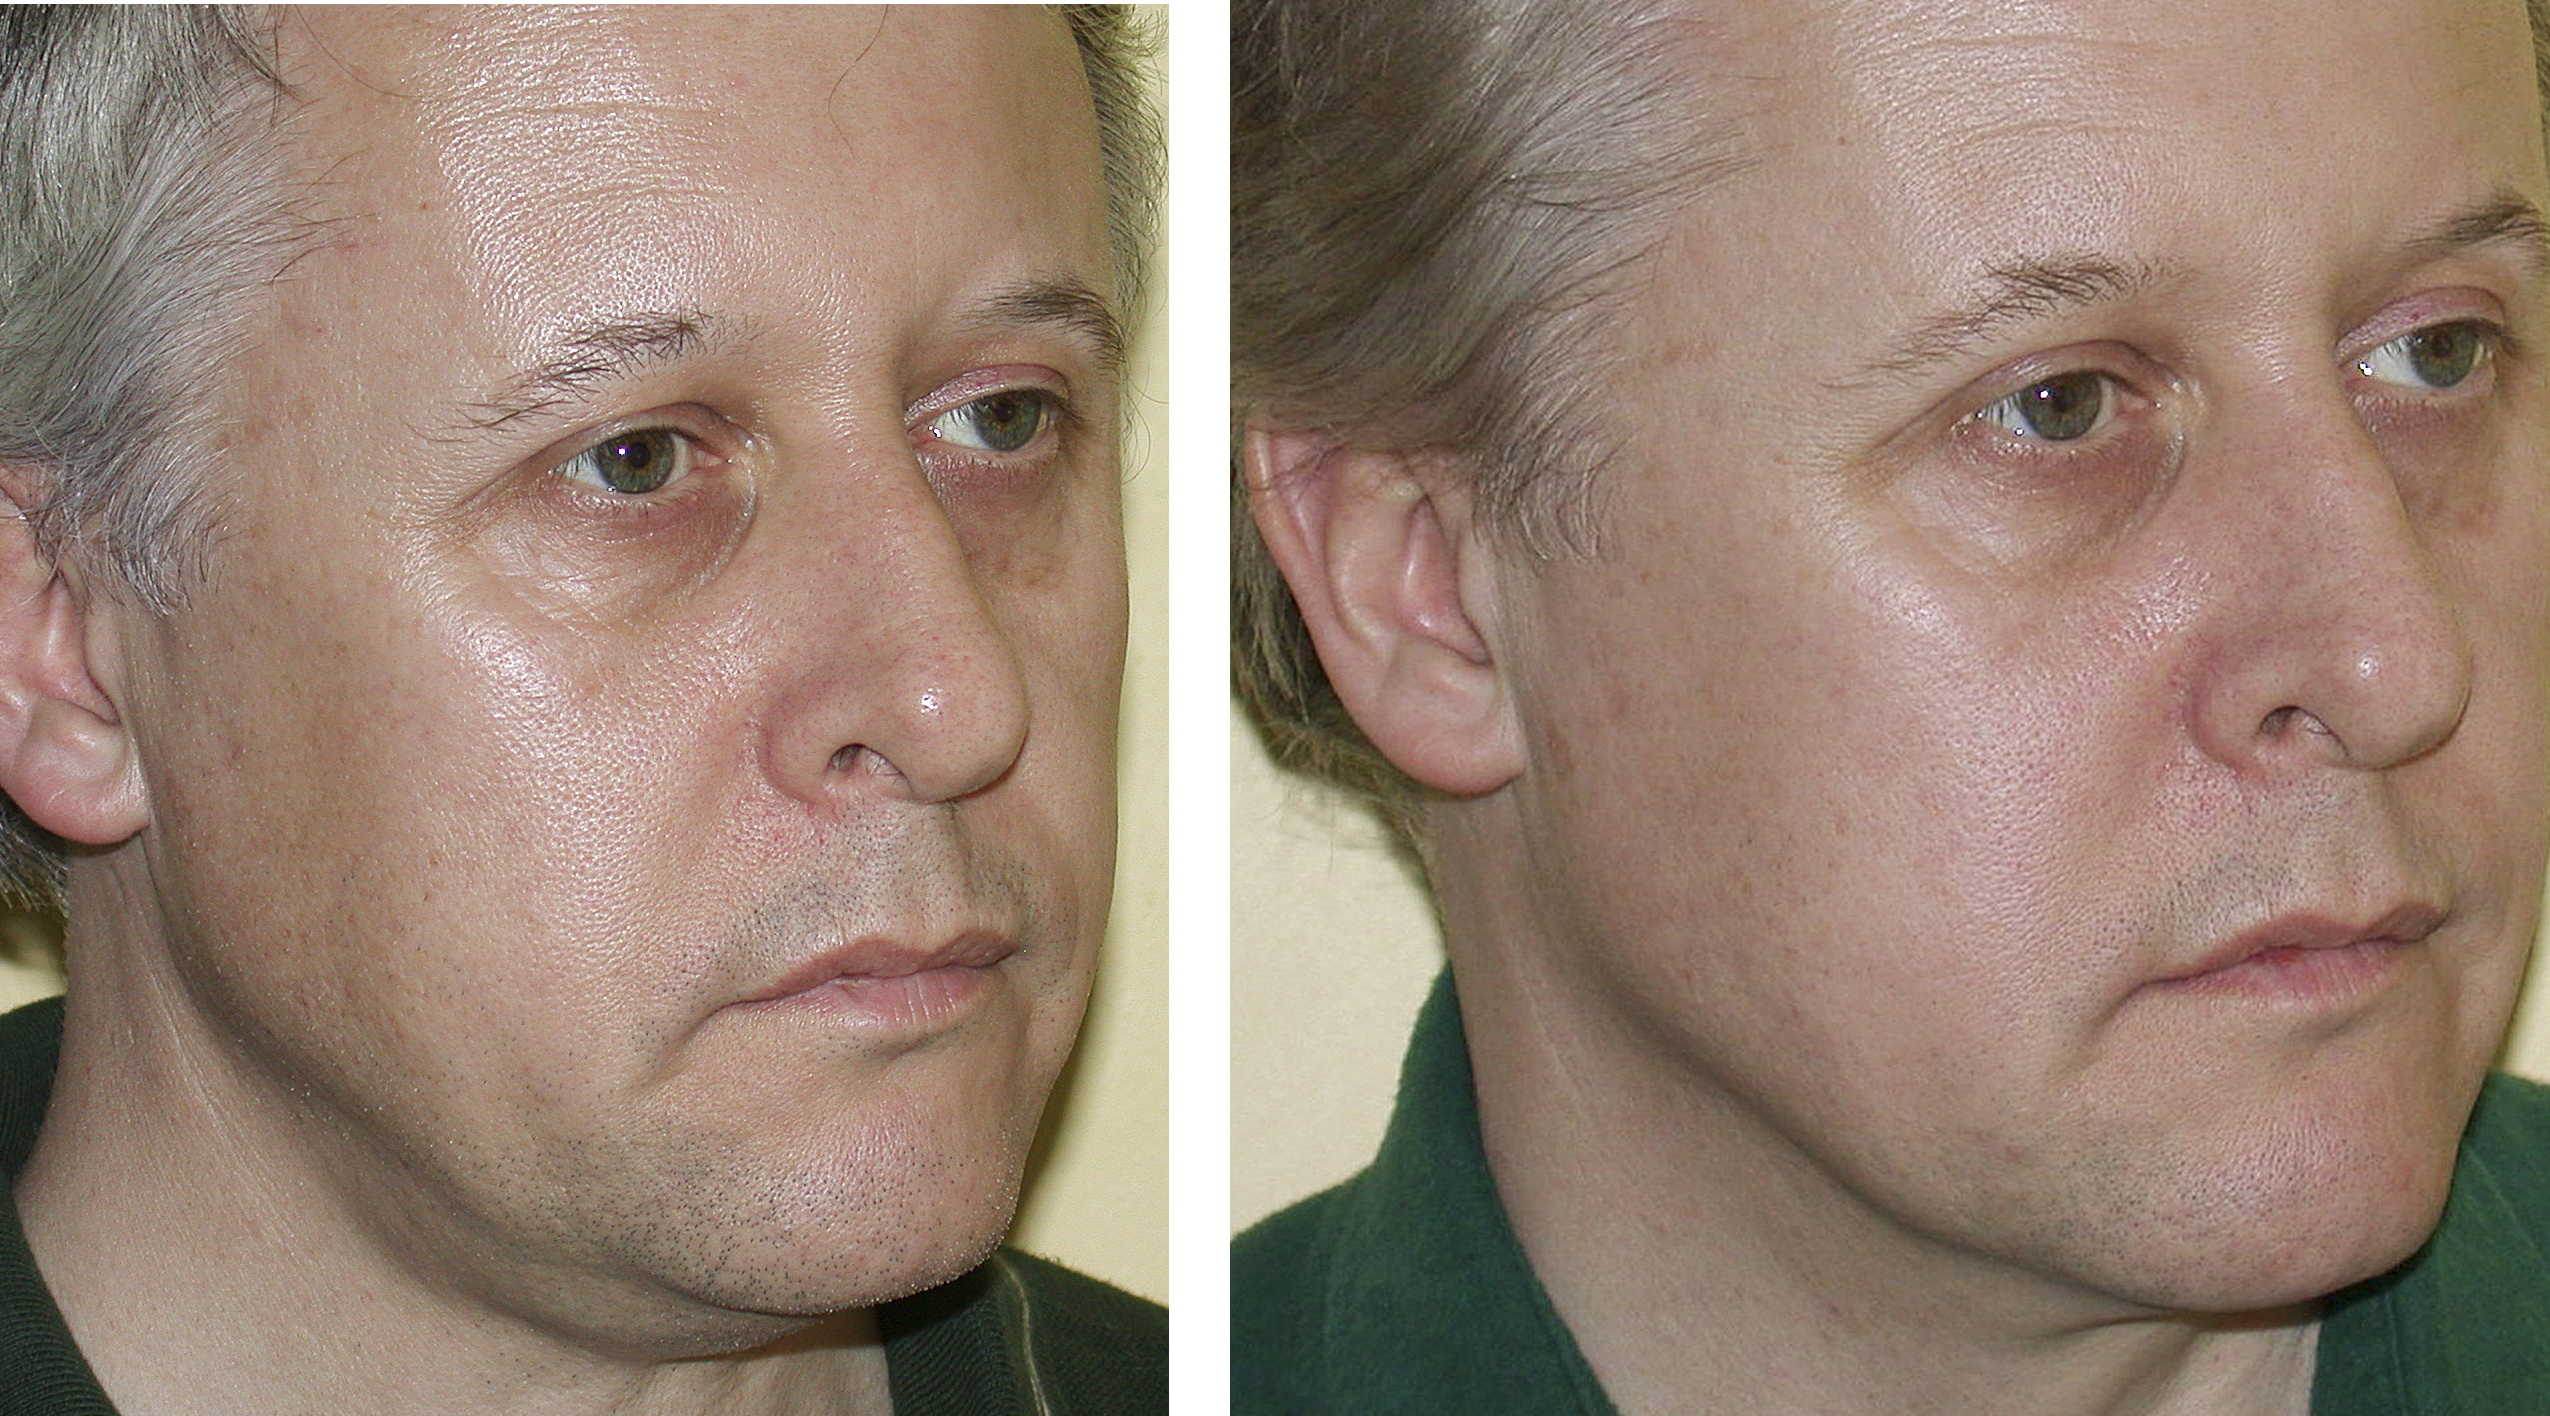 8 month results of combination treatment, Thermage + Botox, by Malthily Nandedkar, M.D..